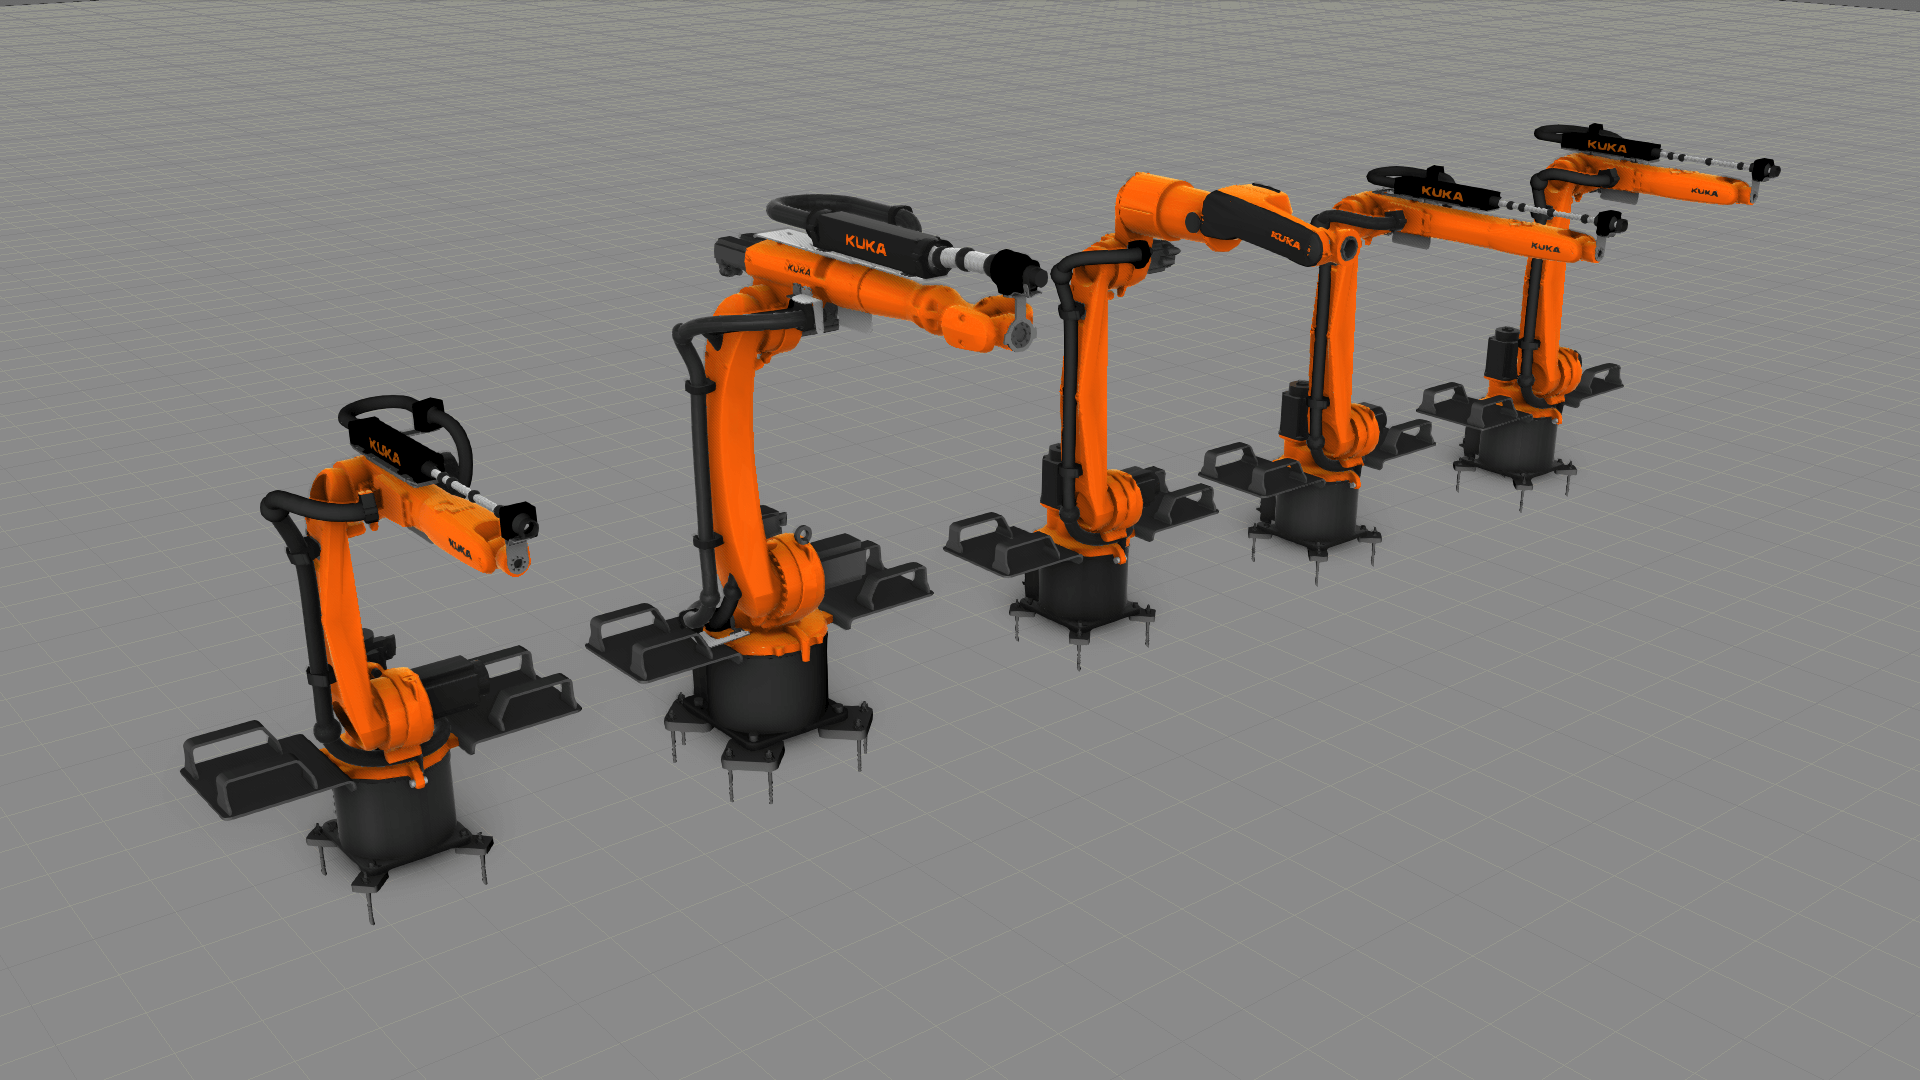 Collection of new Kuka robots in eCatalog